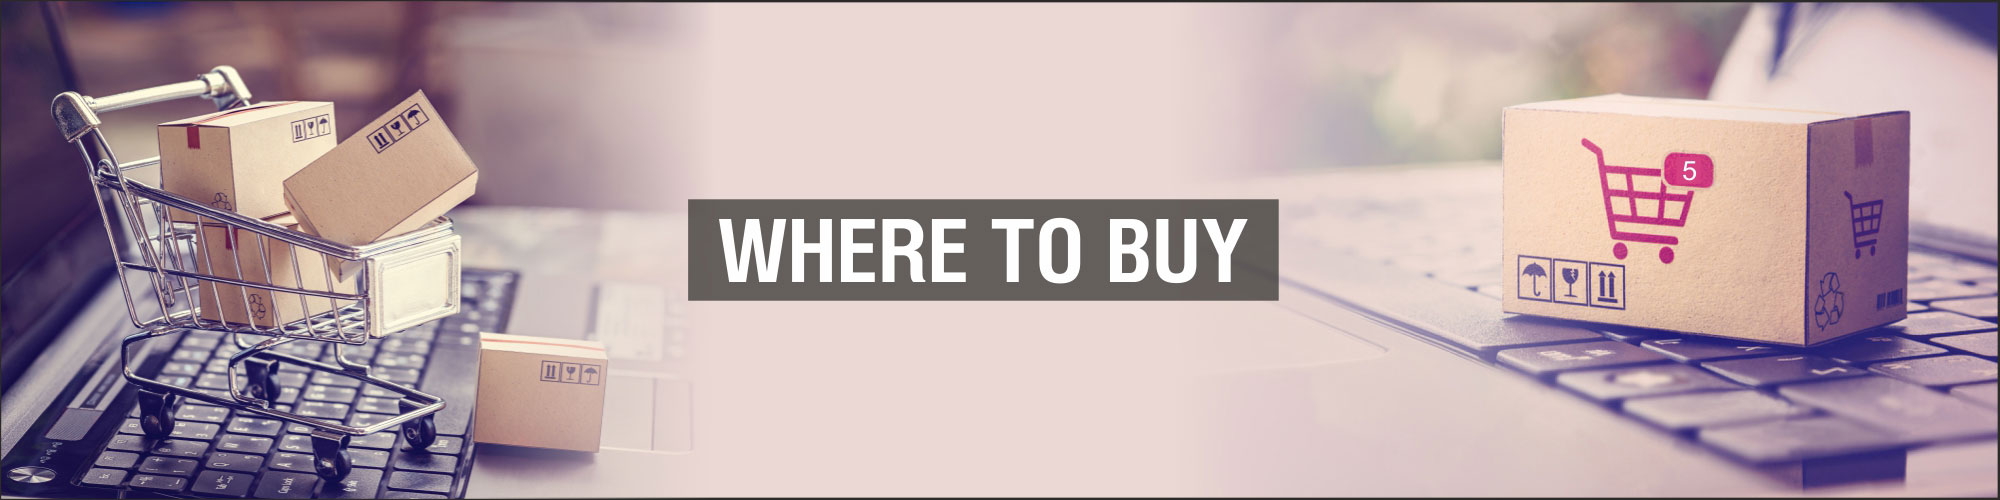 where-to-buy-banner-image